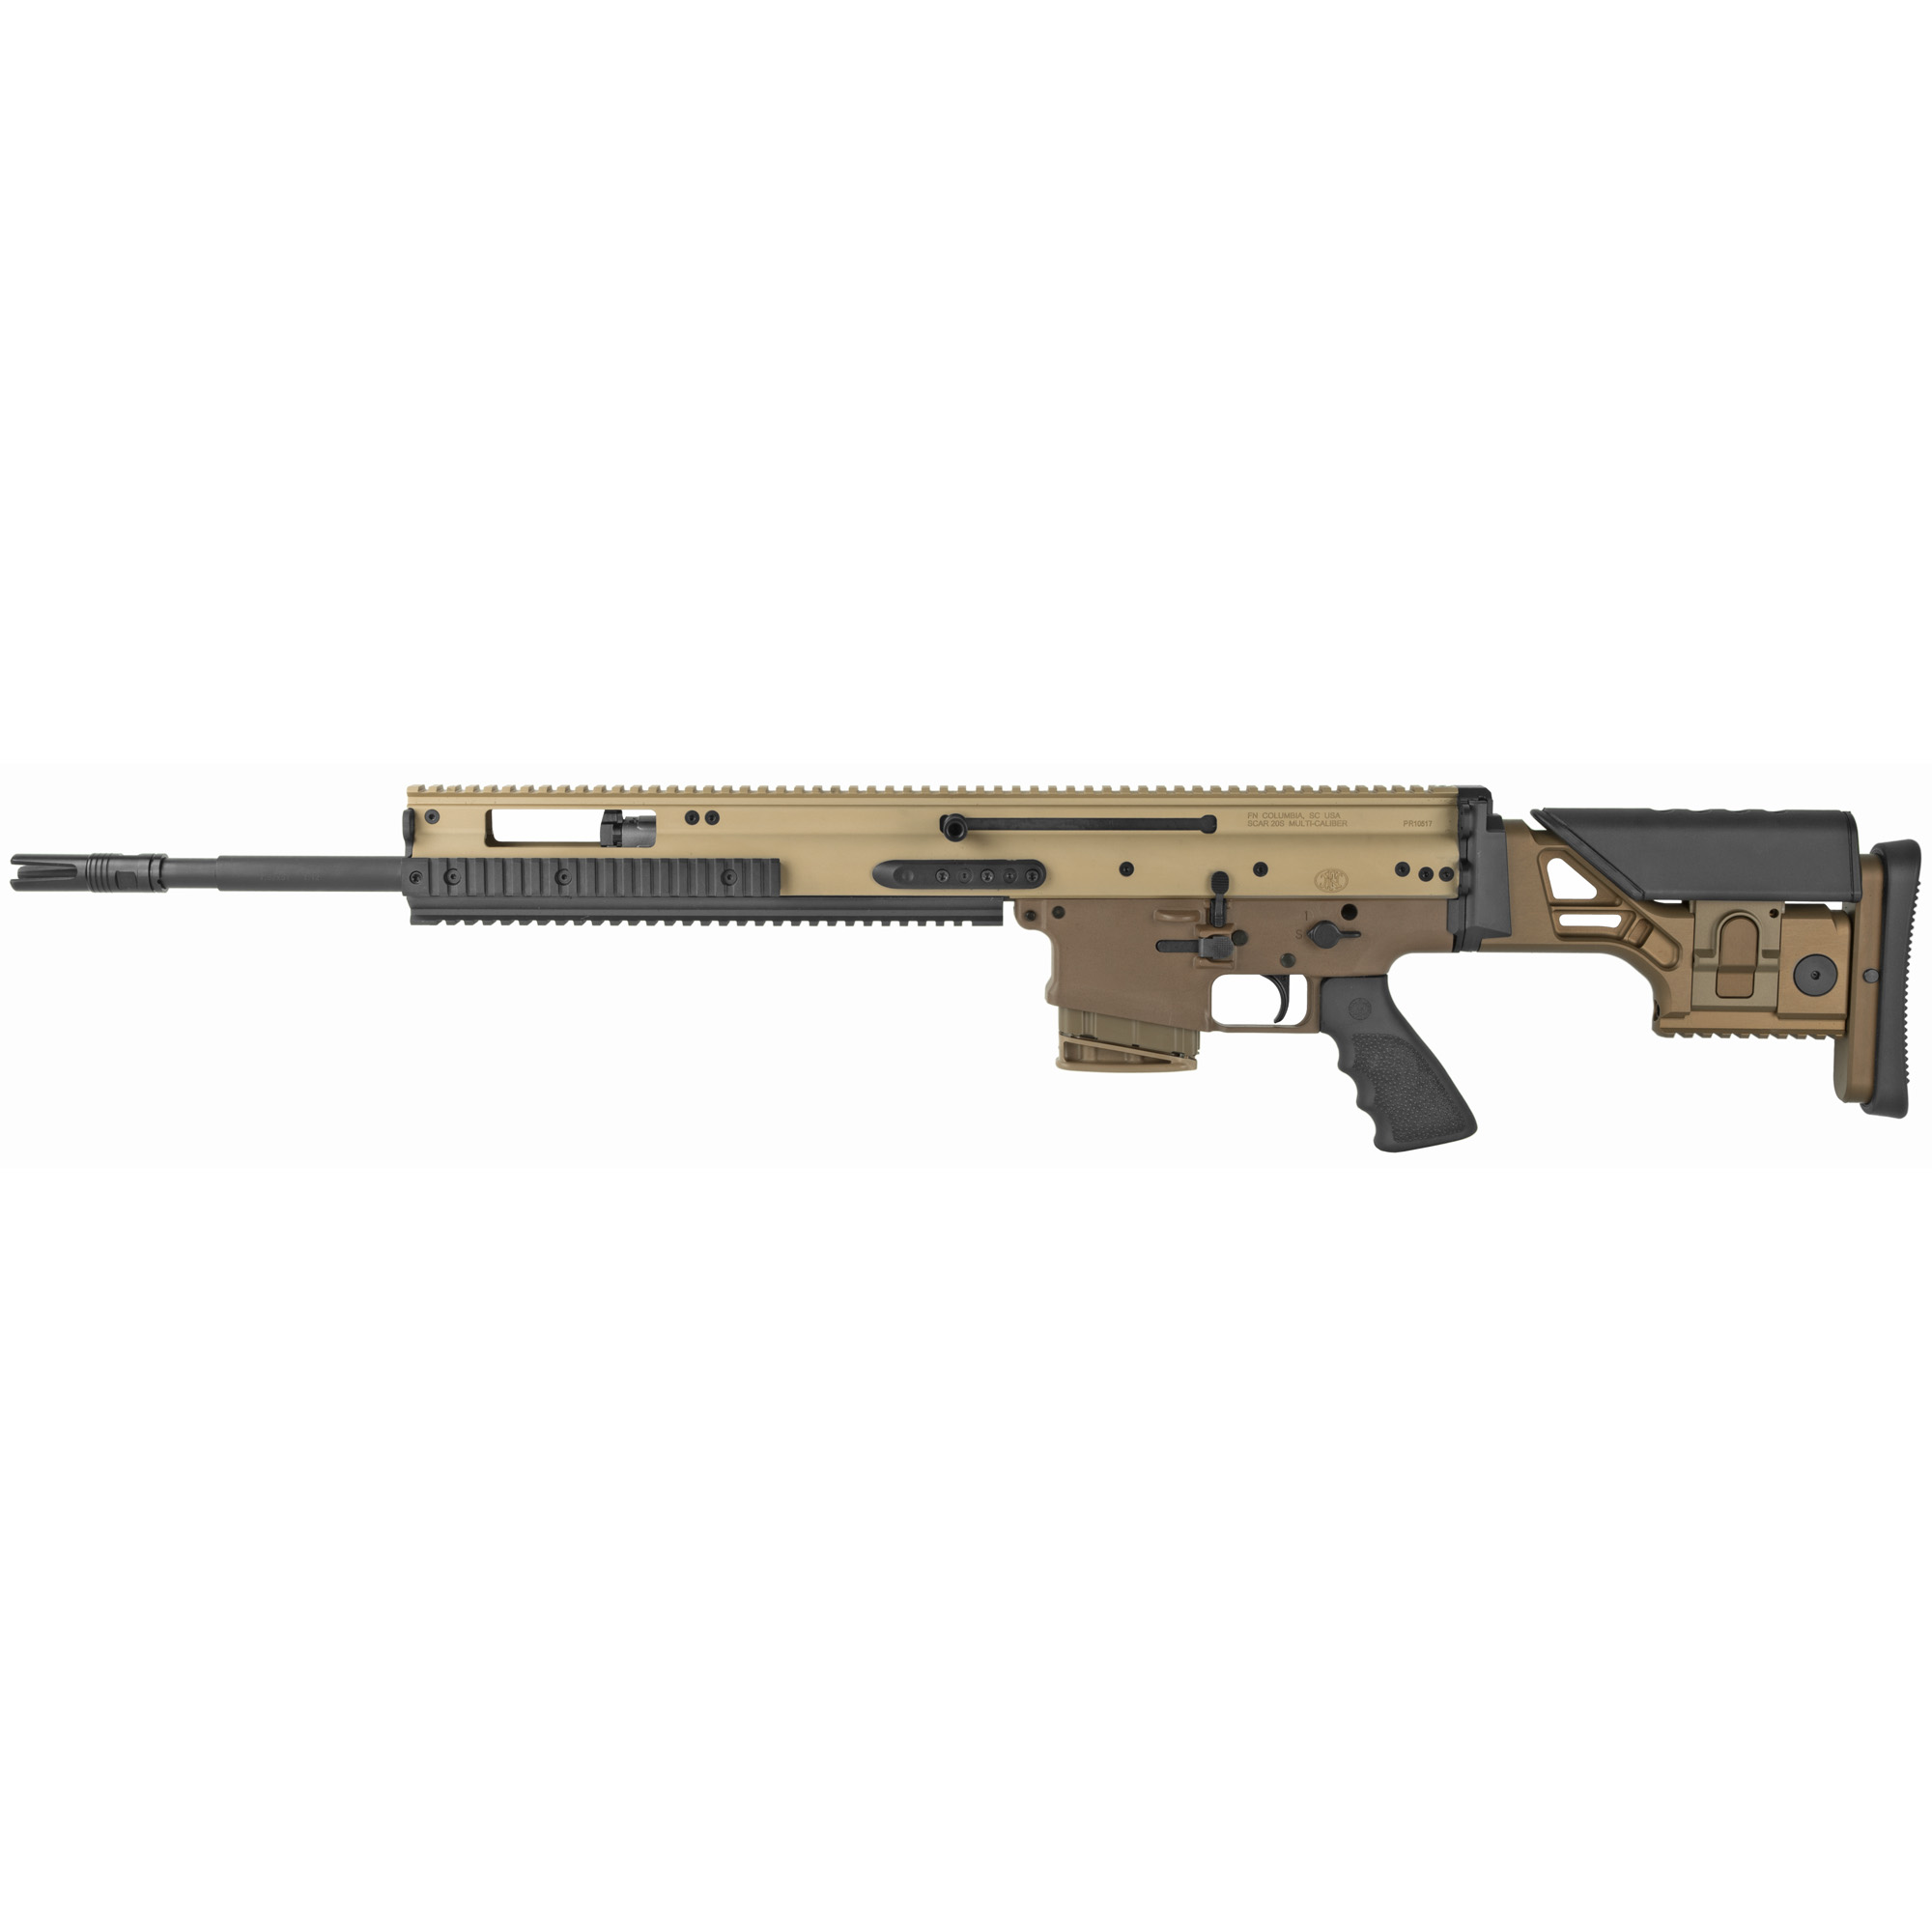 """Take aim with the all-new FN SCAR(R) 20S"""" the latest in battle-proven technology based on the legendary DNA of the 7.62-calibered MK 17 and MK 20 SSR. Perfectly calibrated for long-range precision fire"""" the SCAR 20S gives you the ability to engage targets nearing 800 yards with ease. The gas-operated piston design absorbs recoil efficiently to improve follow-up shots and maintain target acquisition. Lending further aid is the match-grade"""" two-stage trigger that breaks crisply at 3.5-4.5 pounds"""" full-length MIL-STD 1913 rail at 12 o'clock position"""" and fixed buttstock providing adaptability to fit to each user's needs through adjustable length of pull and cheek rest height."""